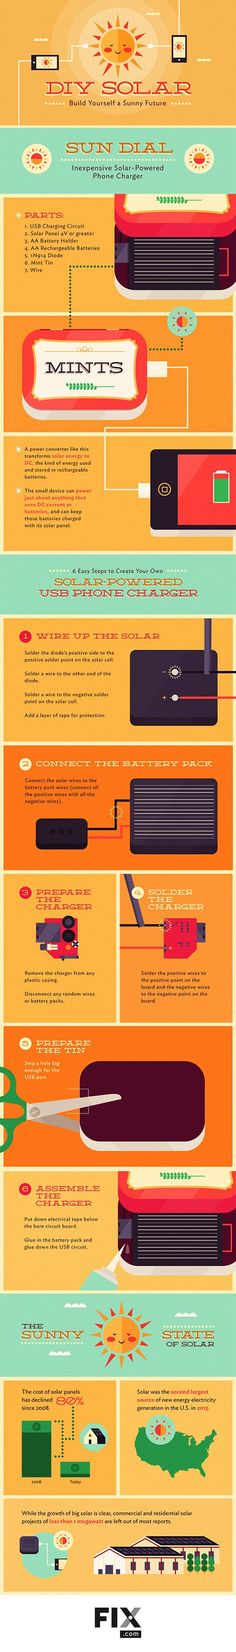 INFOGRAPHIC: Make your own solar phone charger   Inhabitat - Sustainable Design Innovation, Eco Architecture, Green Building